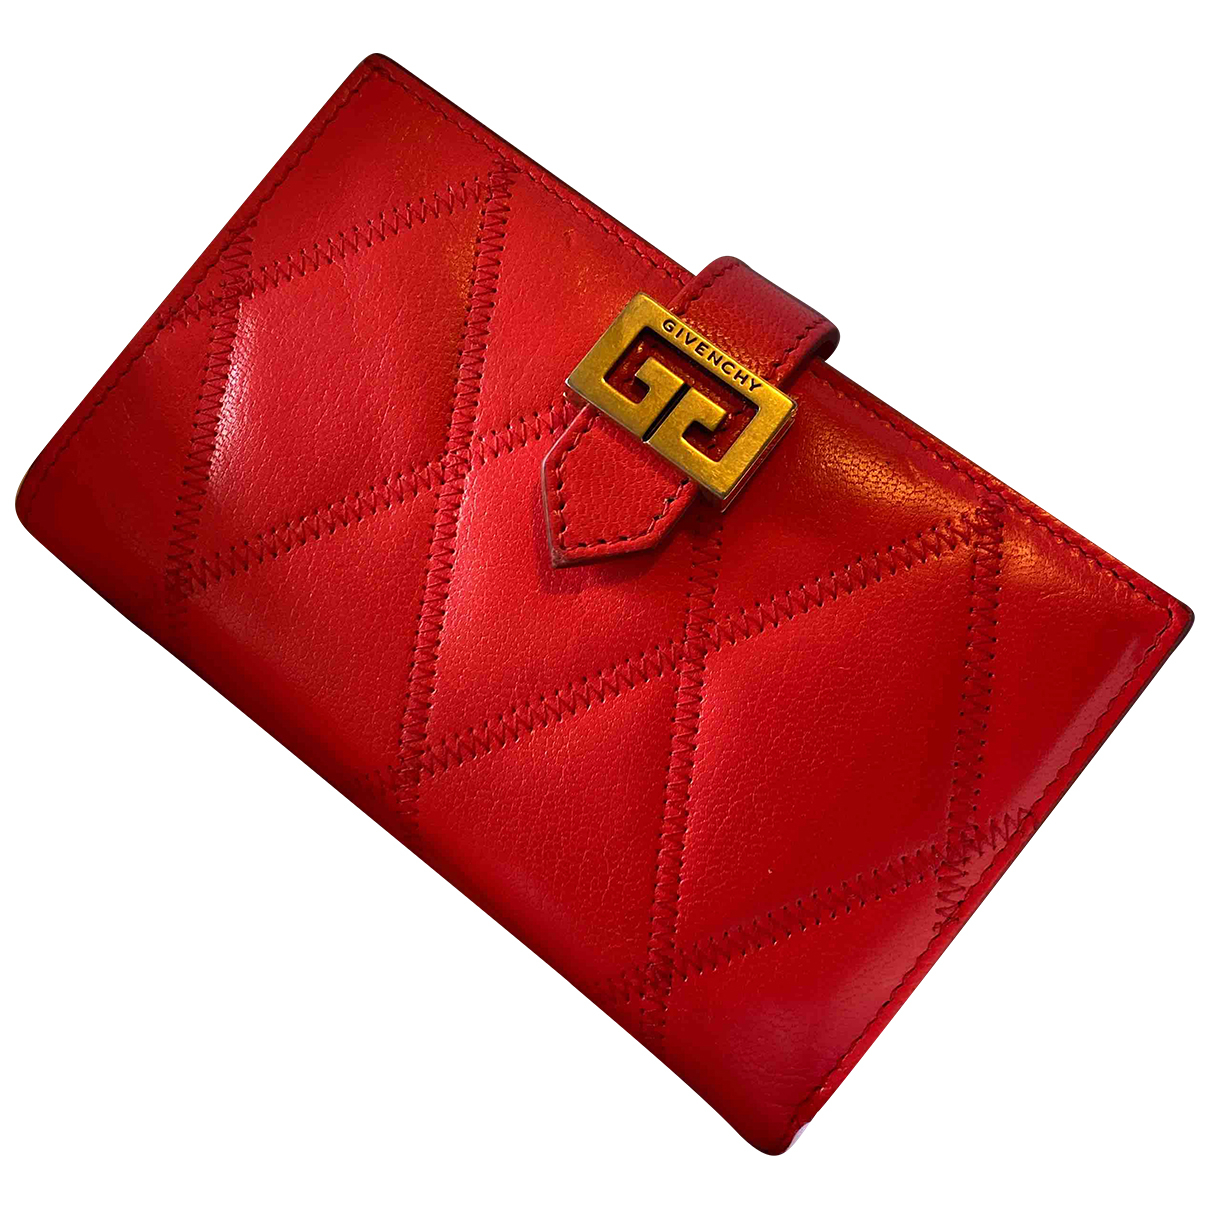 Givenchy GV Red Leather Purses, wallet & cases for Women N